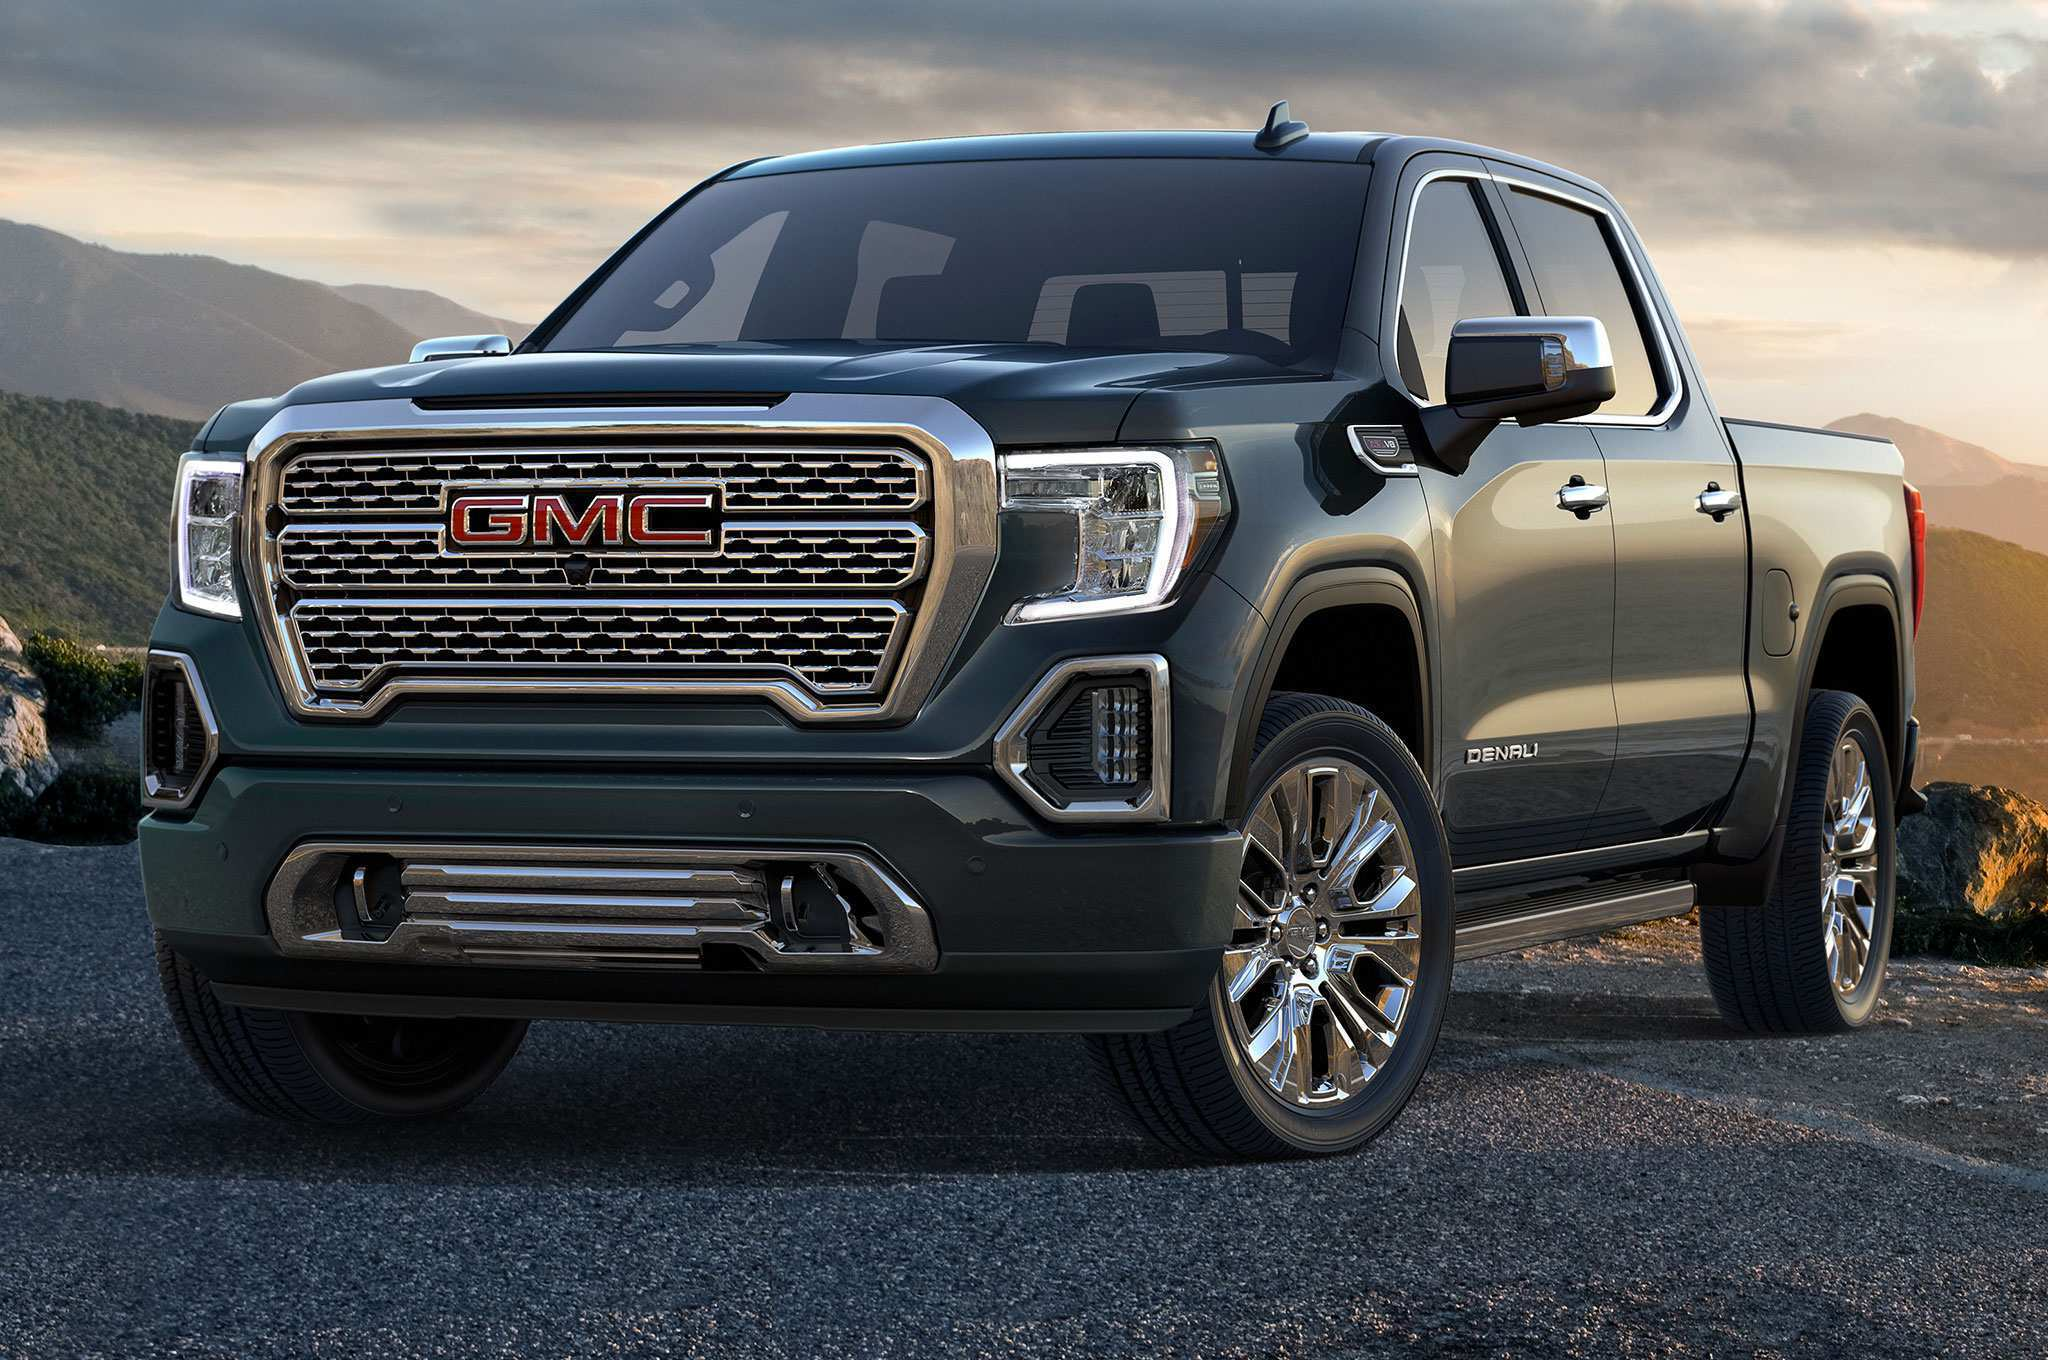 46 Concept of 2019 Gmc Sonoma Exterior with 2019 Gmc Sonoma